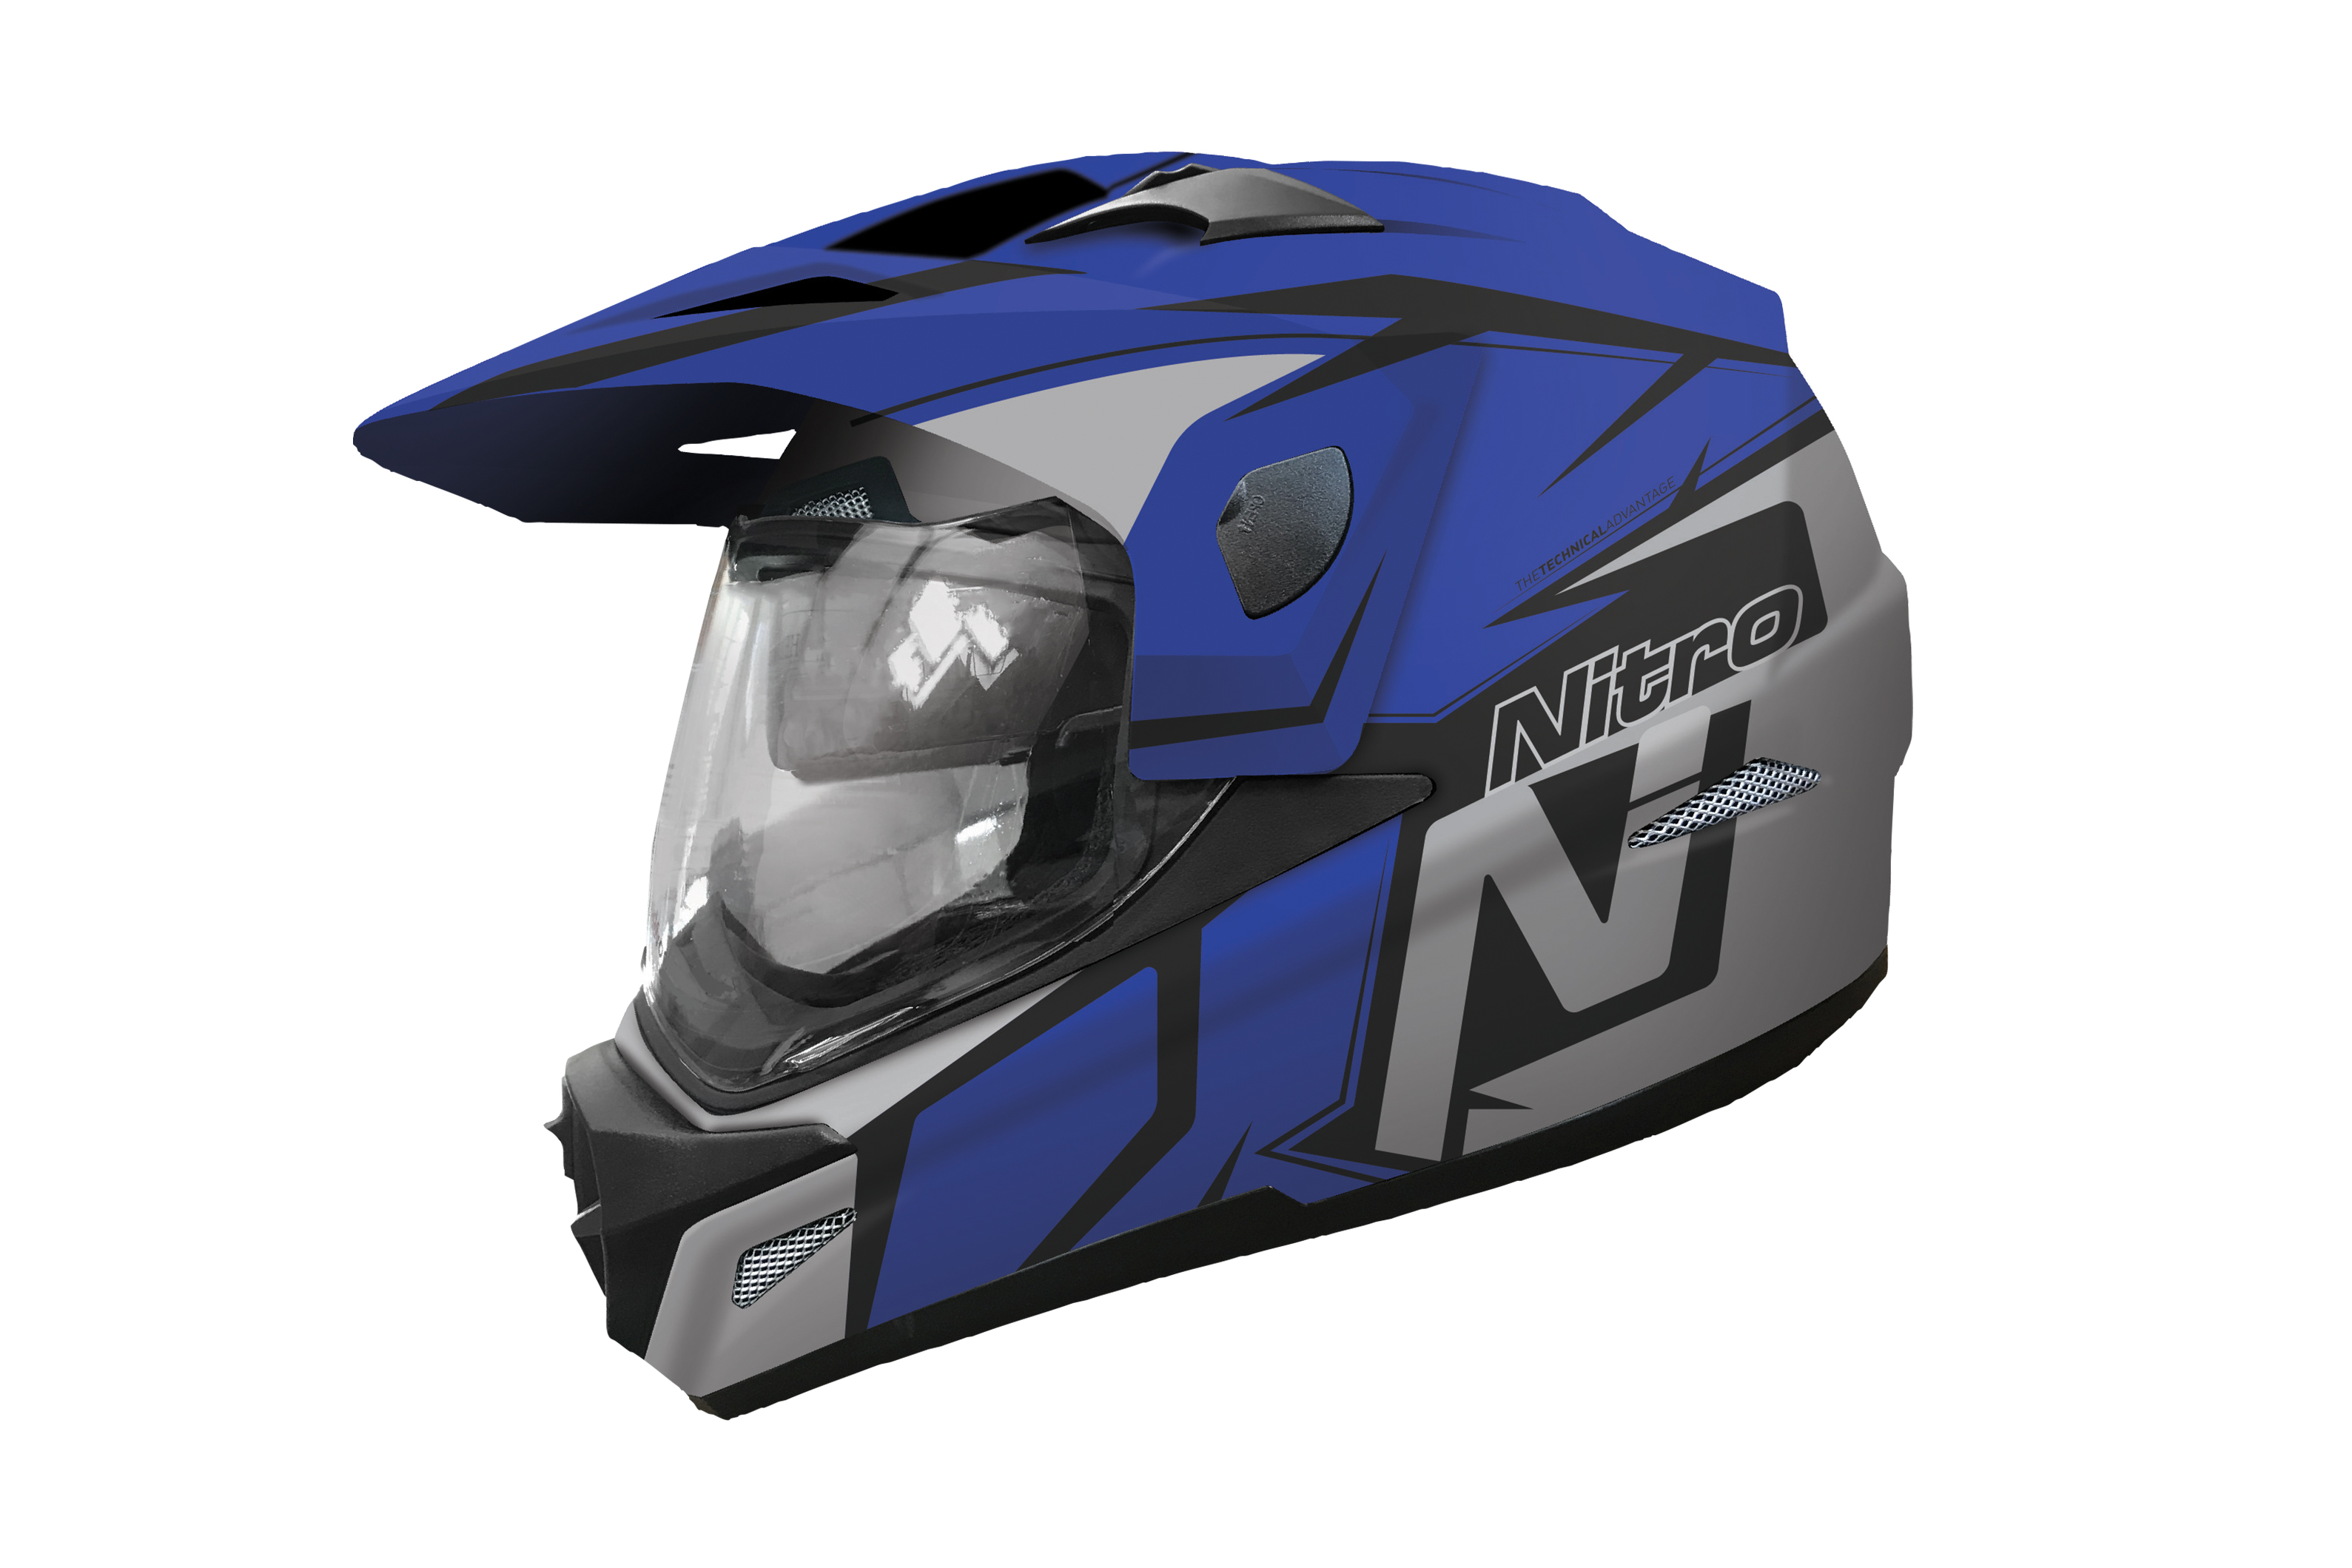 New adventure motorcycling helmet from Nitro